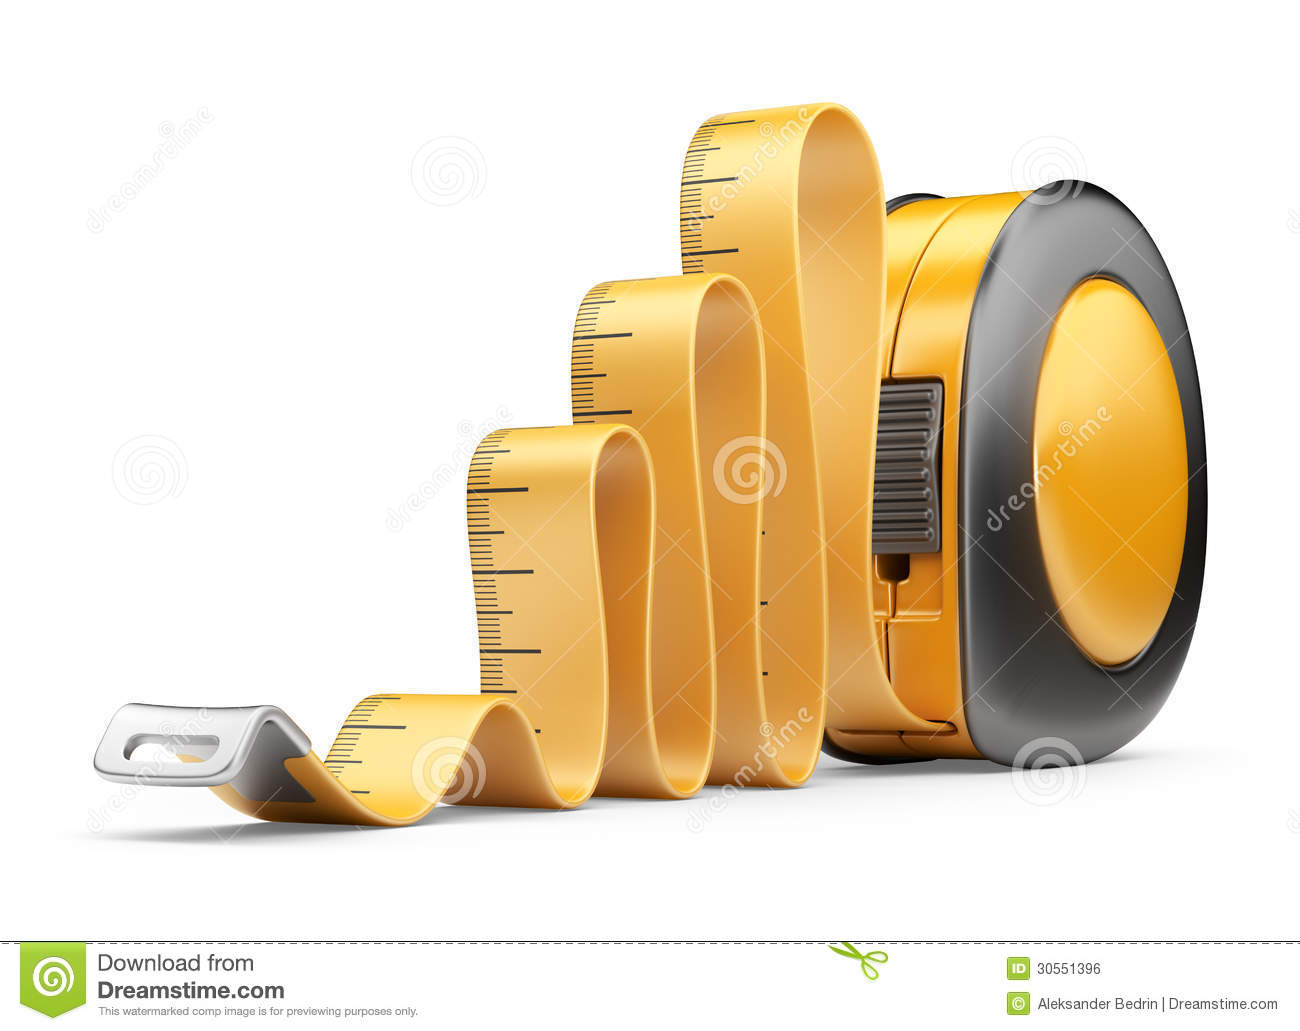 Process Improvement Icon Tape measure ruler  3D Icon